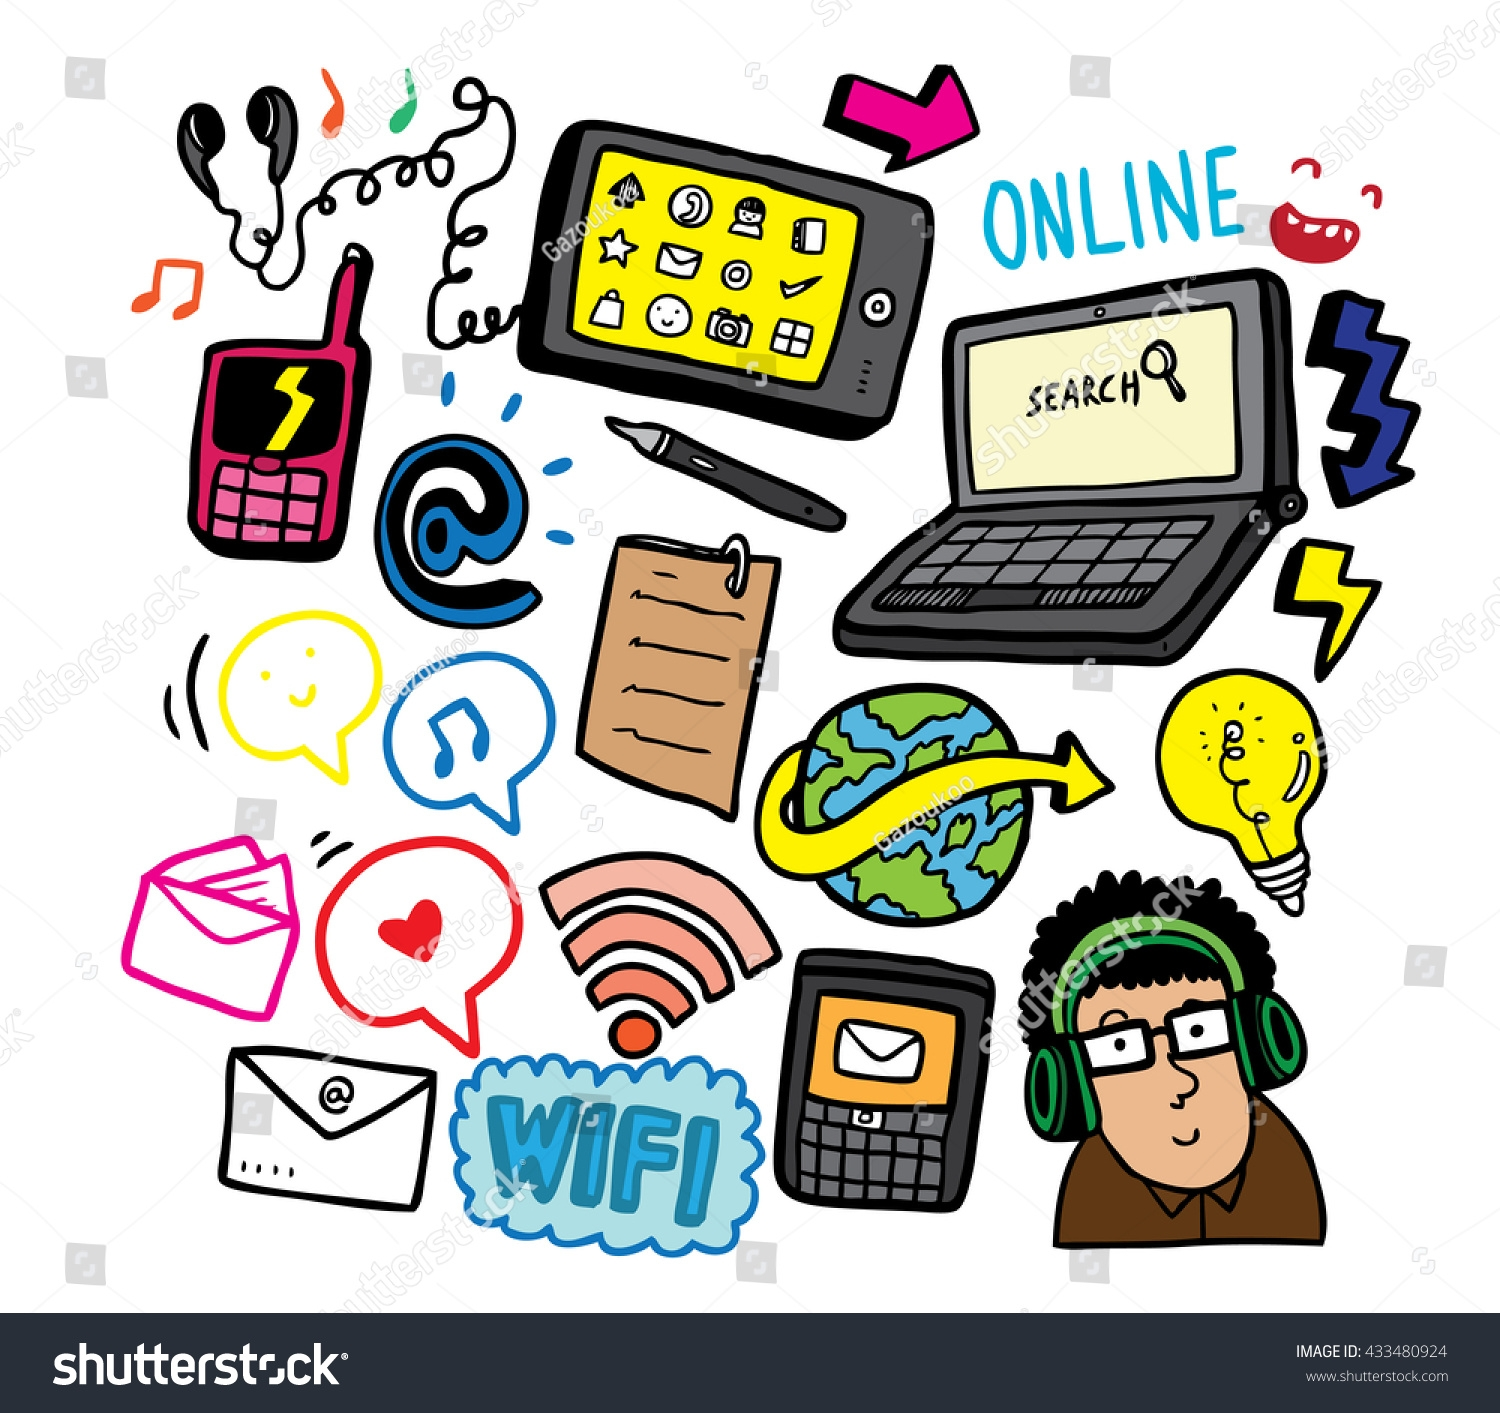 Technology clipart. Best of gallery digital